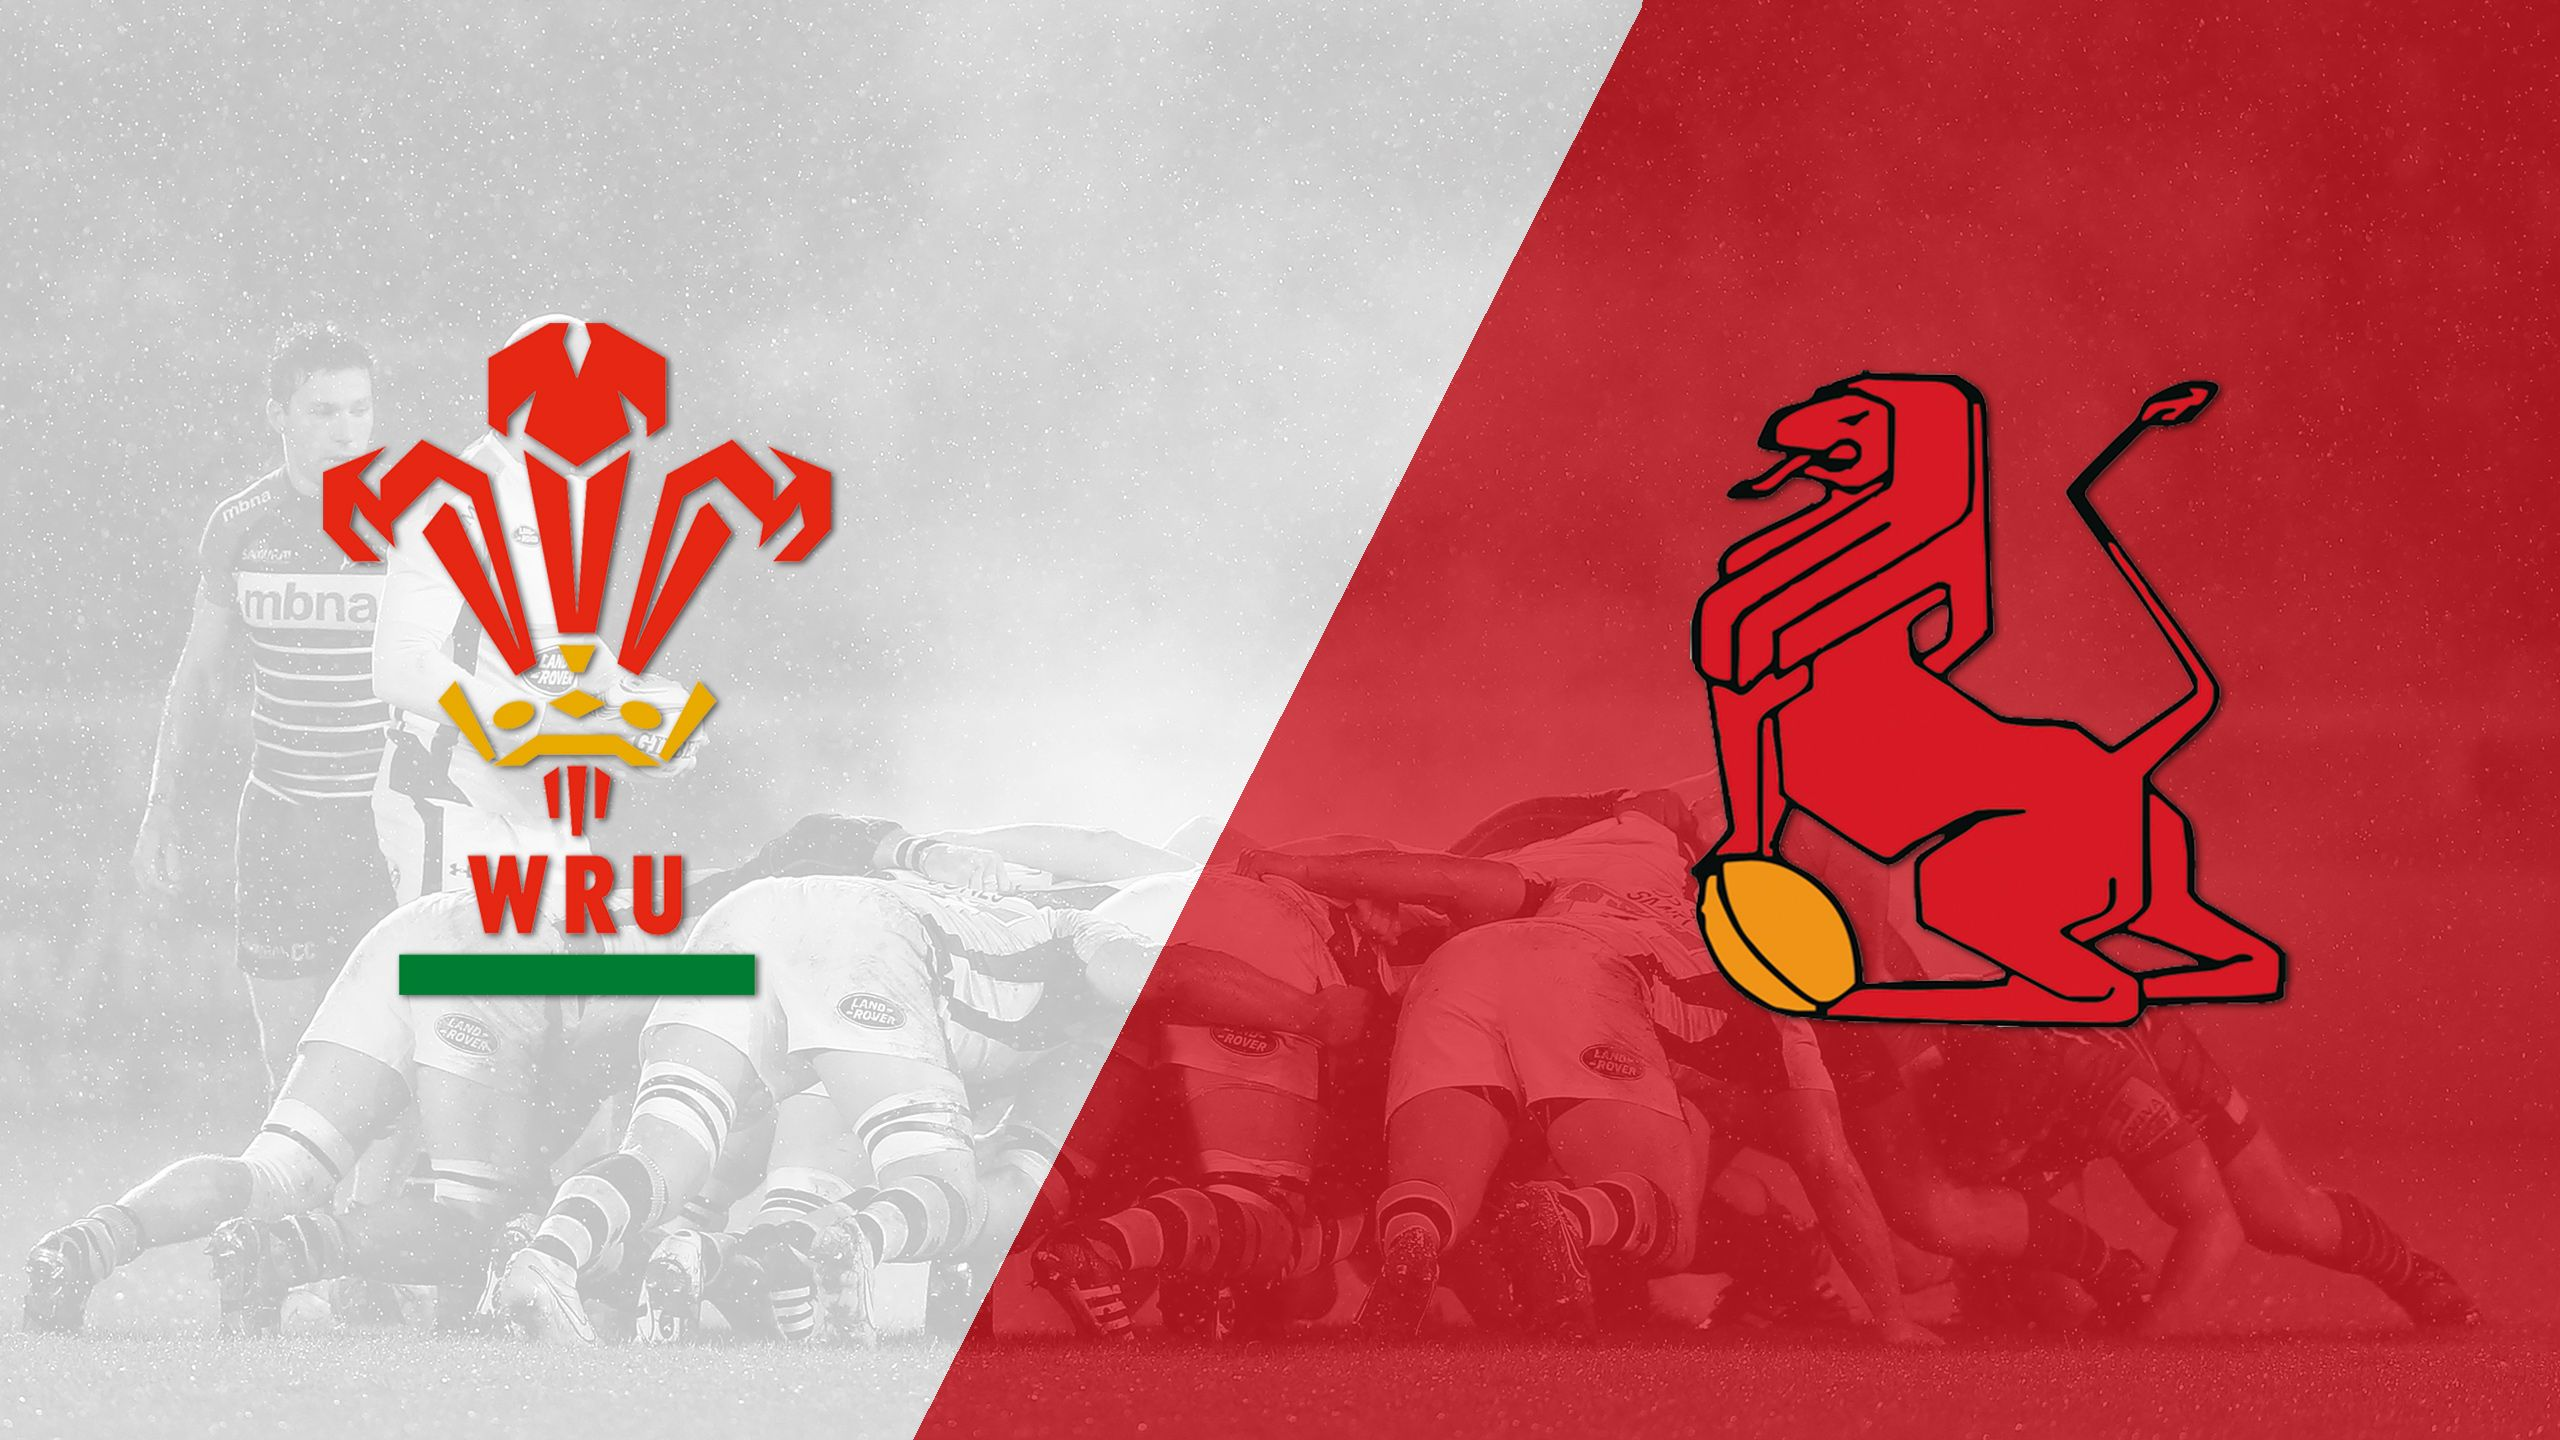 Wales vs. Spain (World Rugby Sevens Series)